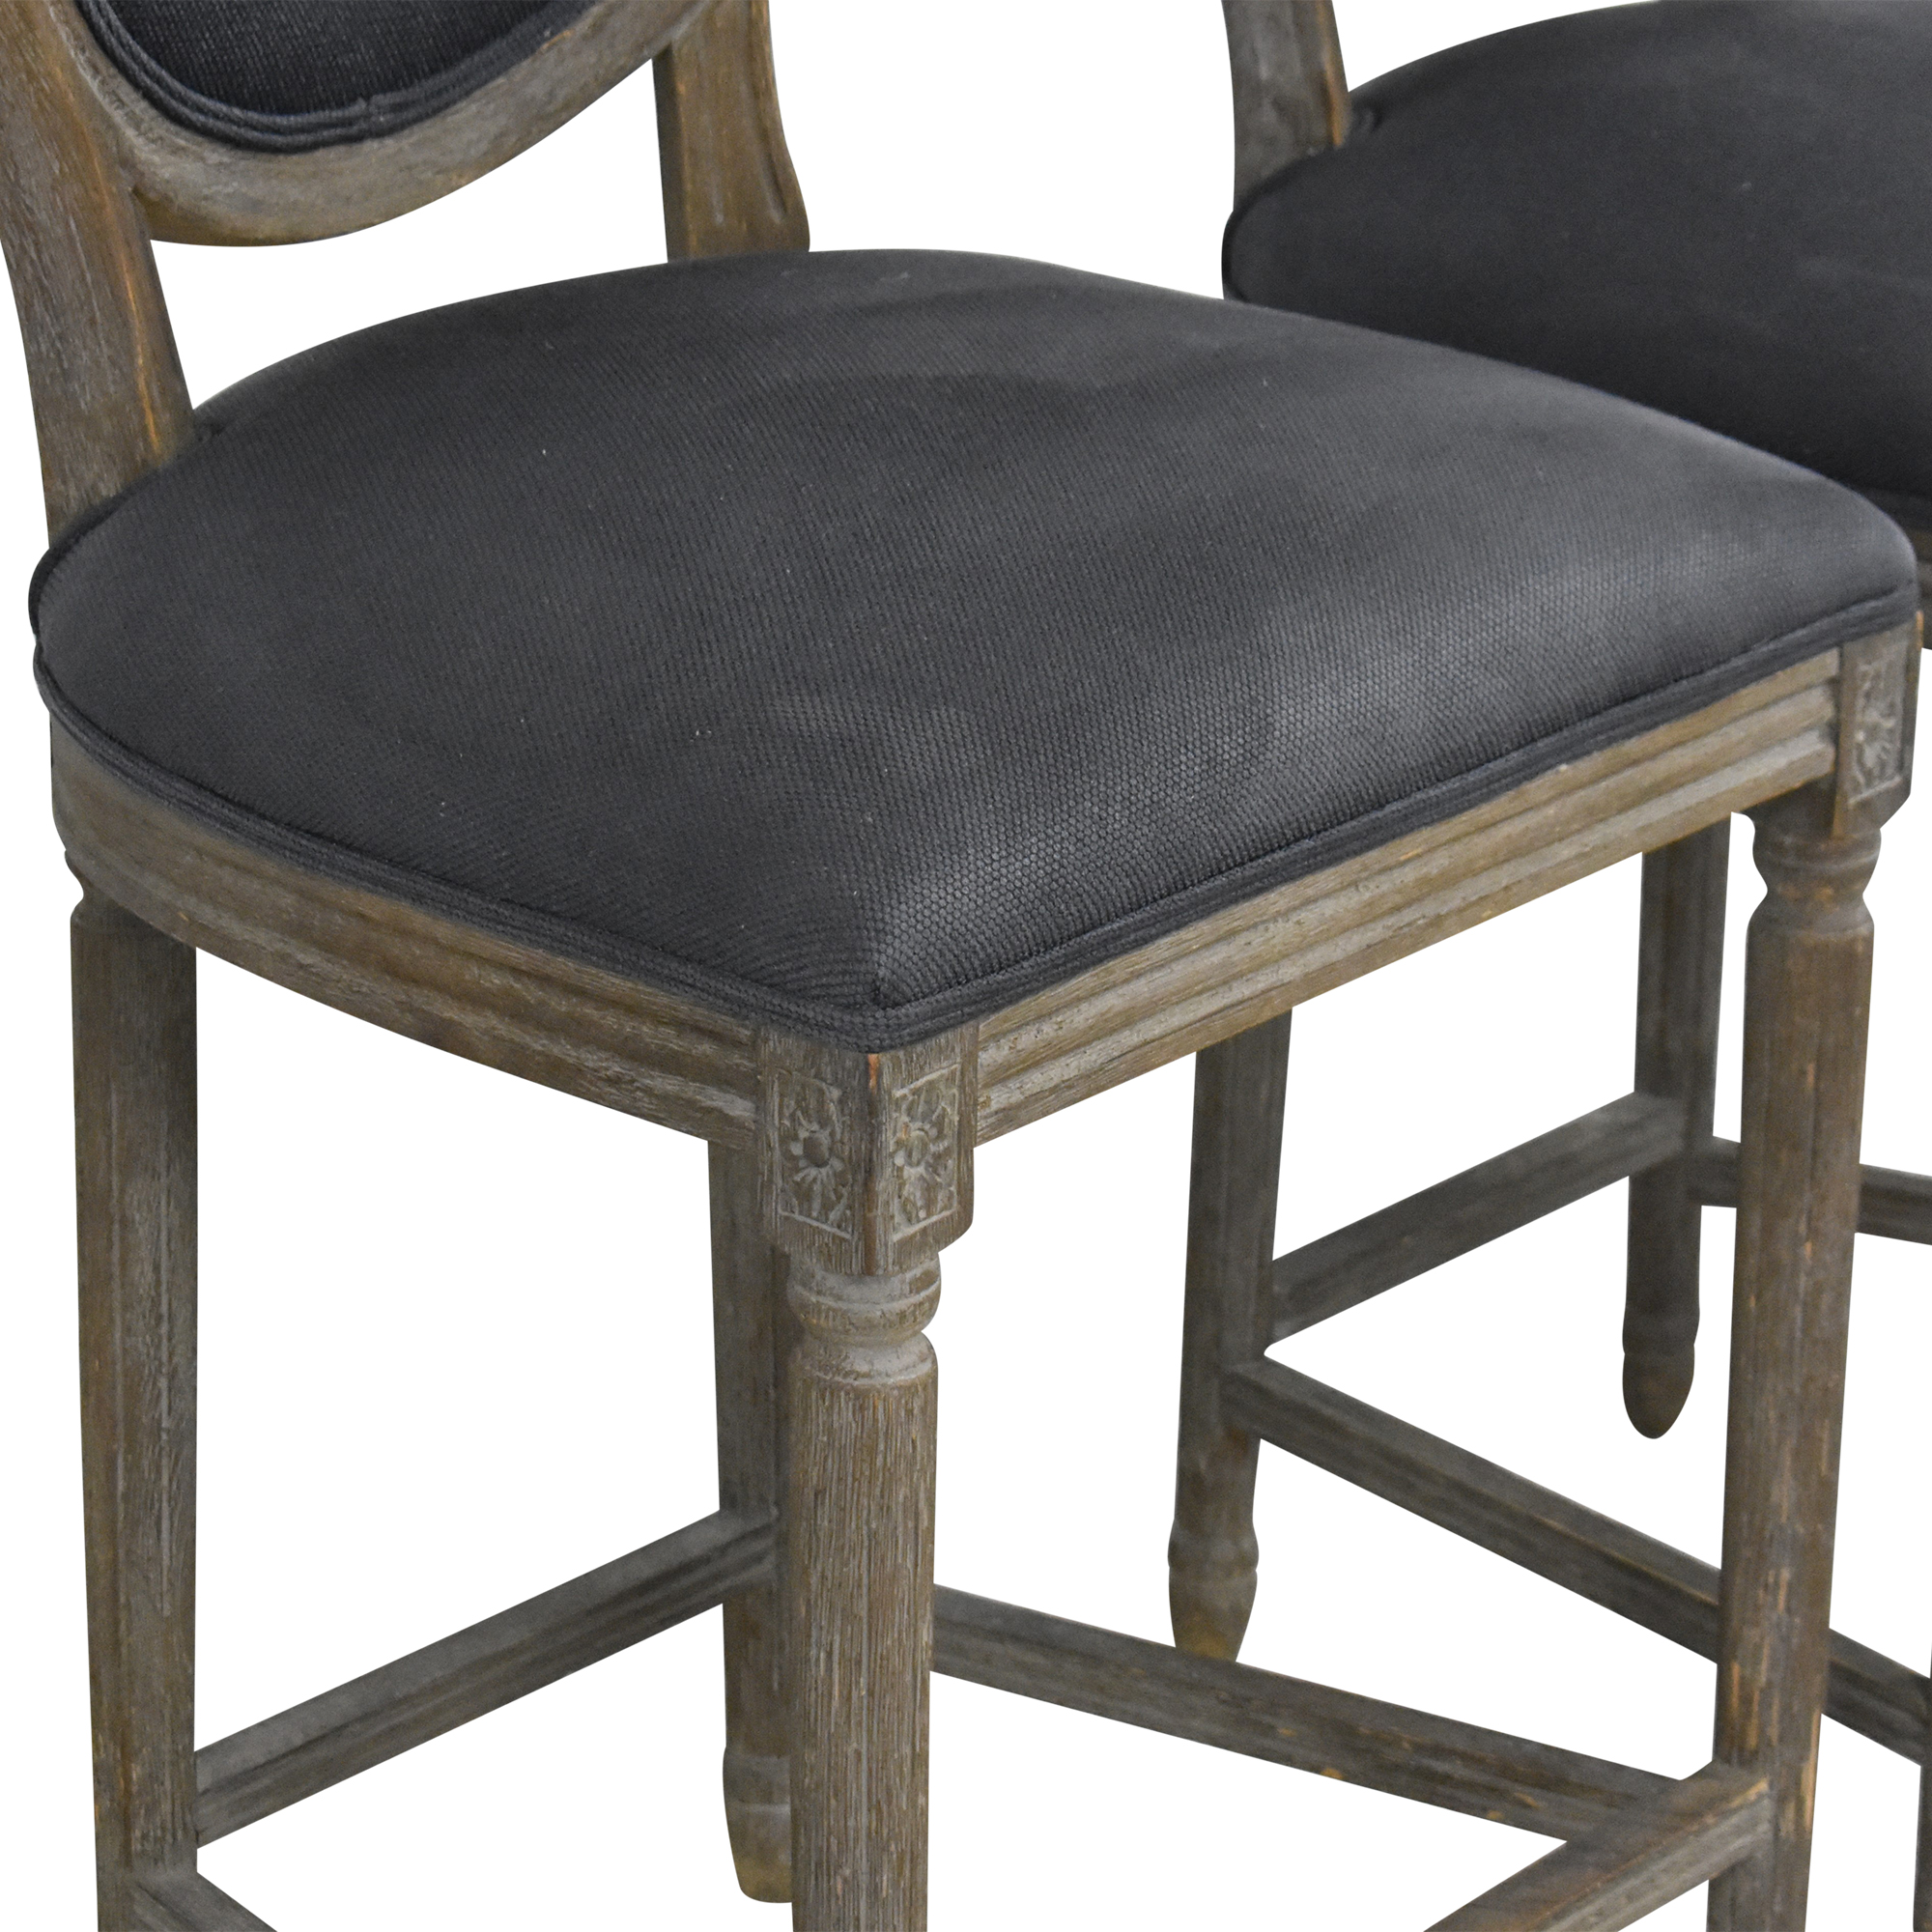 Restoration Hardware Restoration Hardware Vintage French Round Counter Stools price